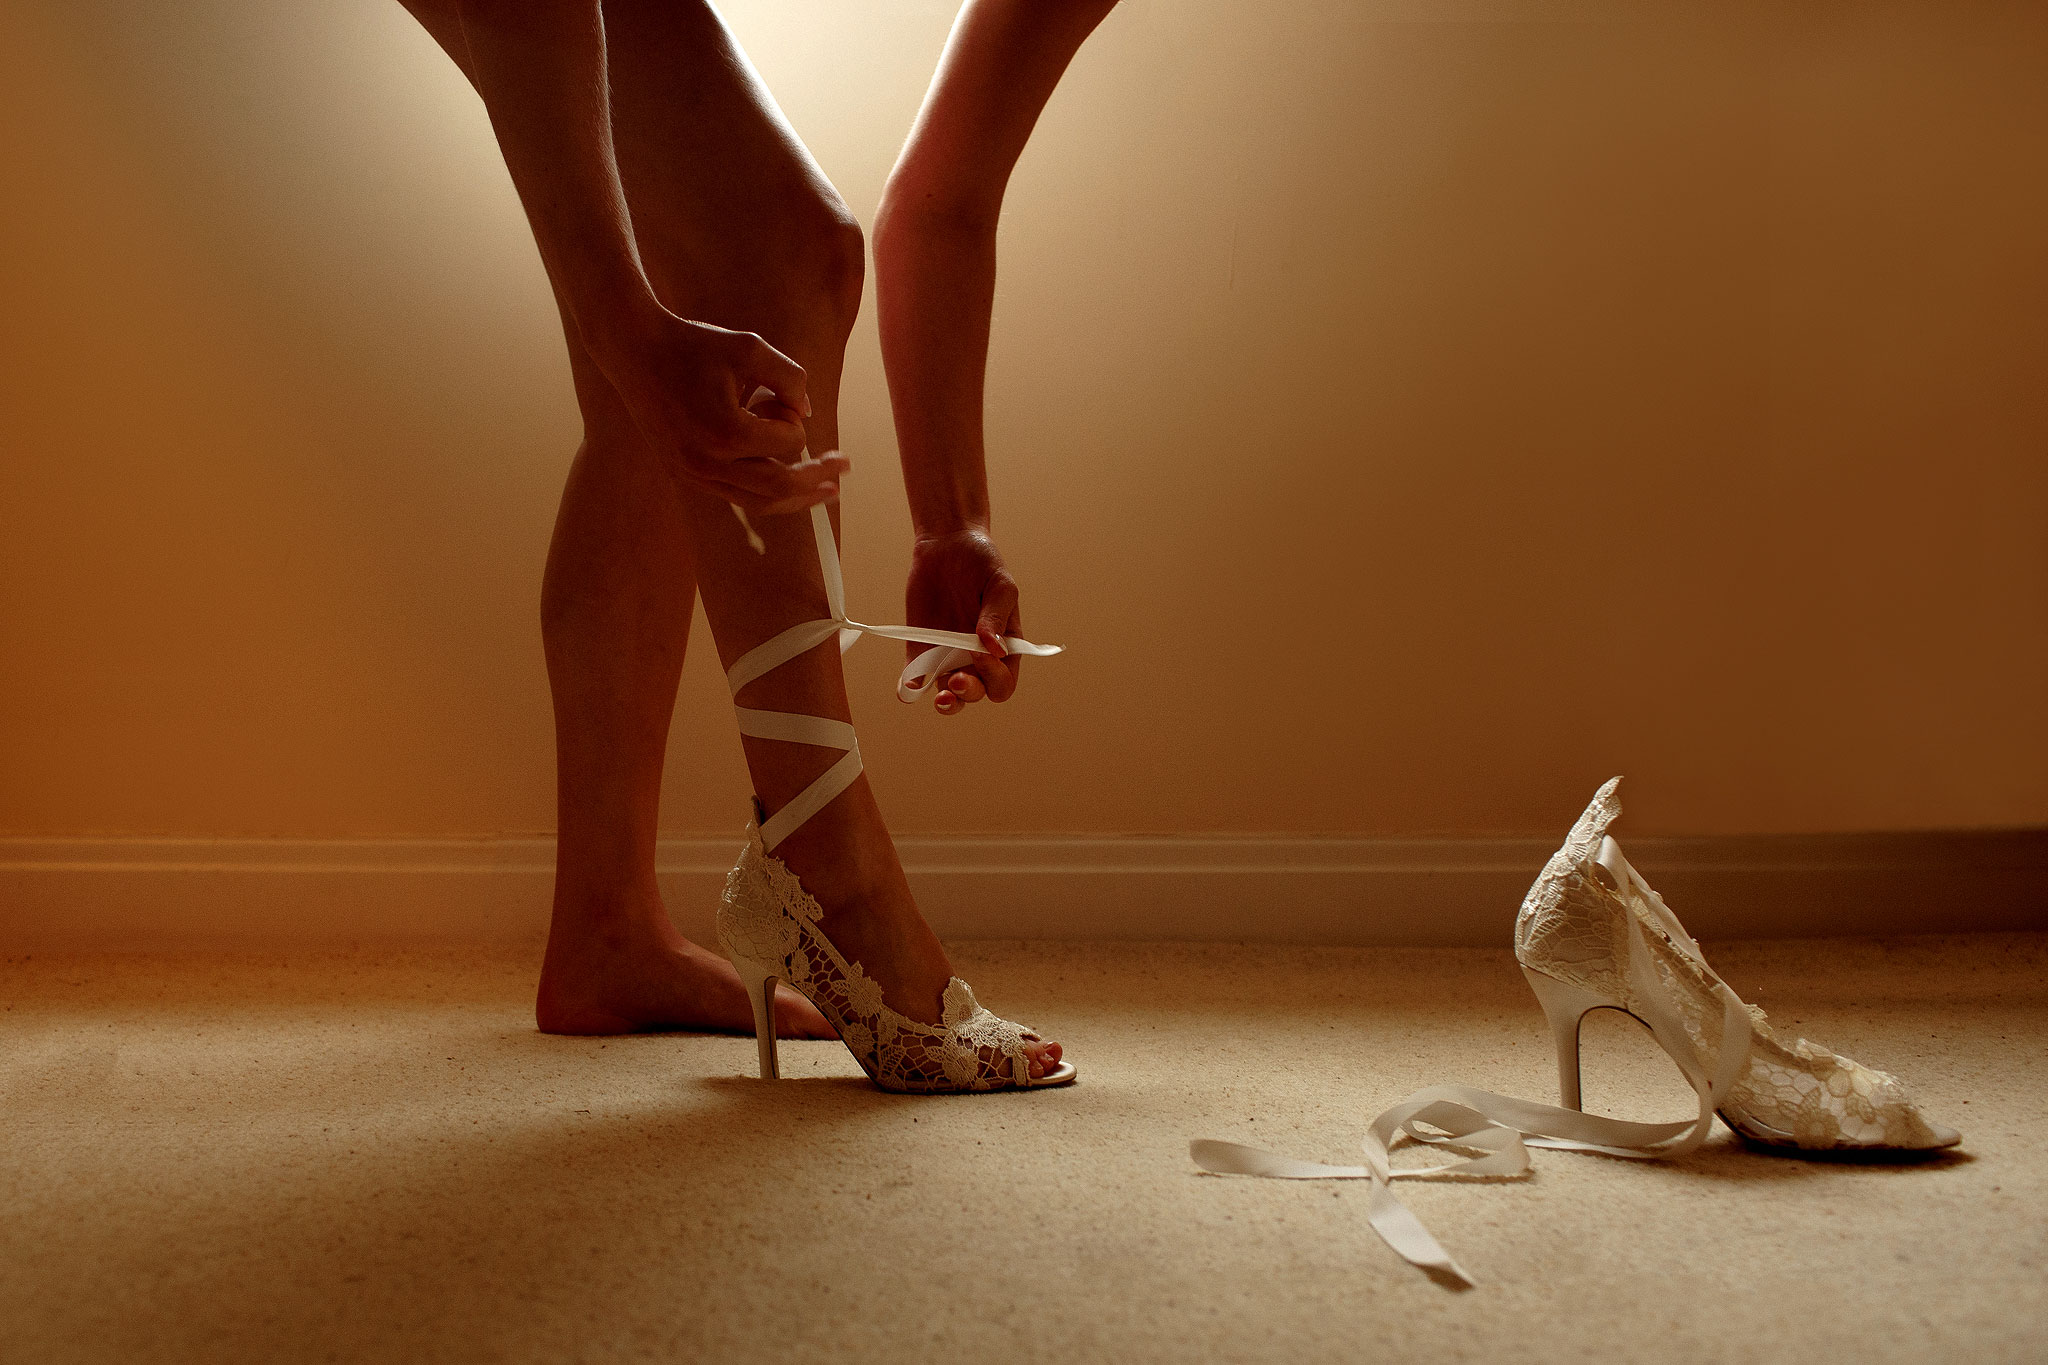 Legs of bride as she ties high heel cream shoes with ribbon ties that wrap around the leg